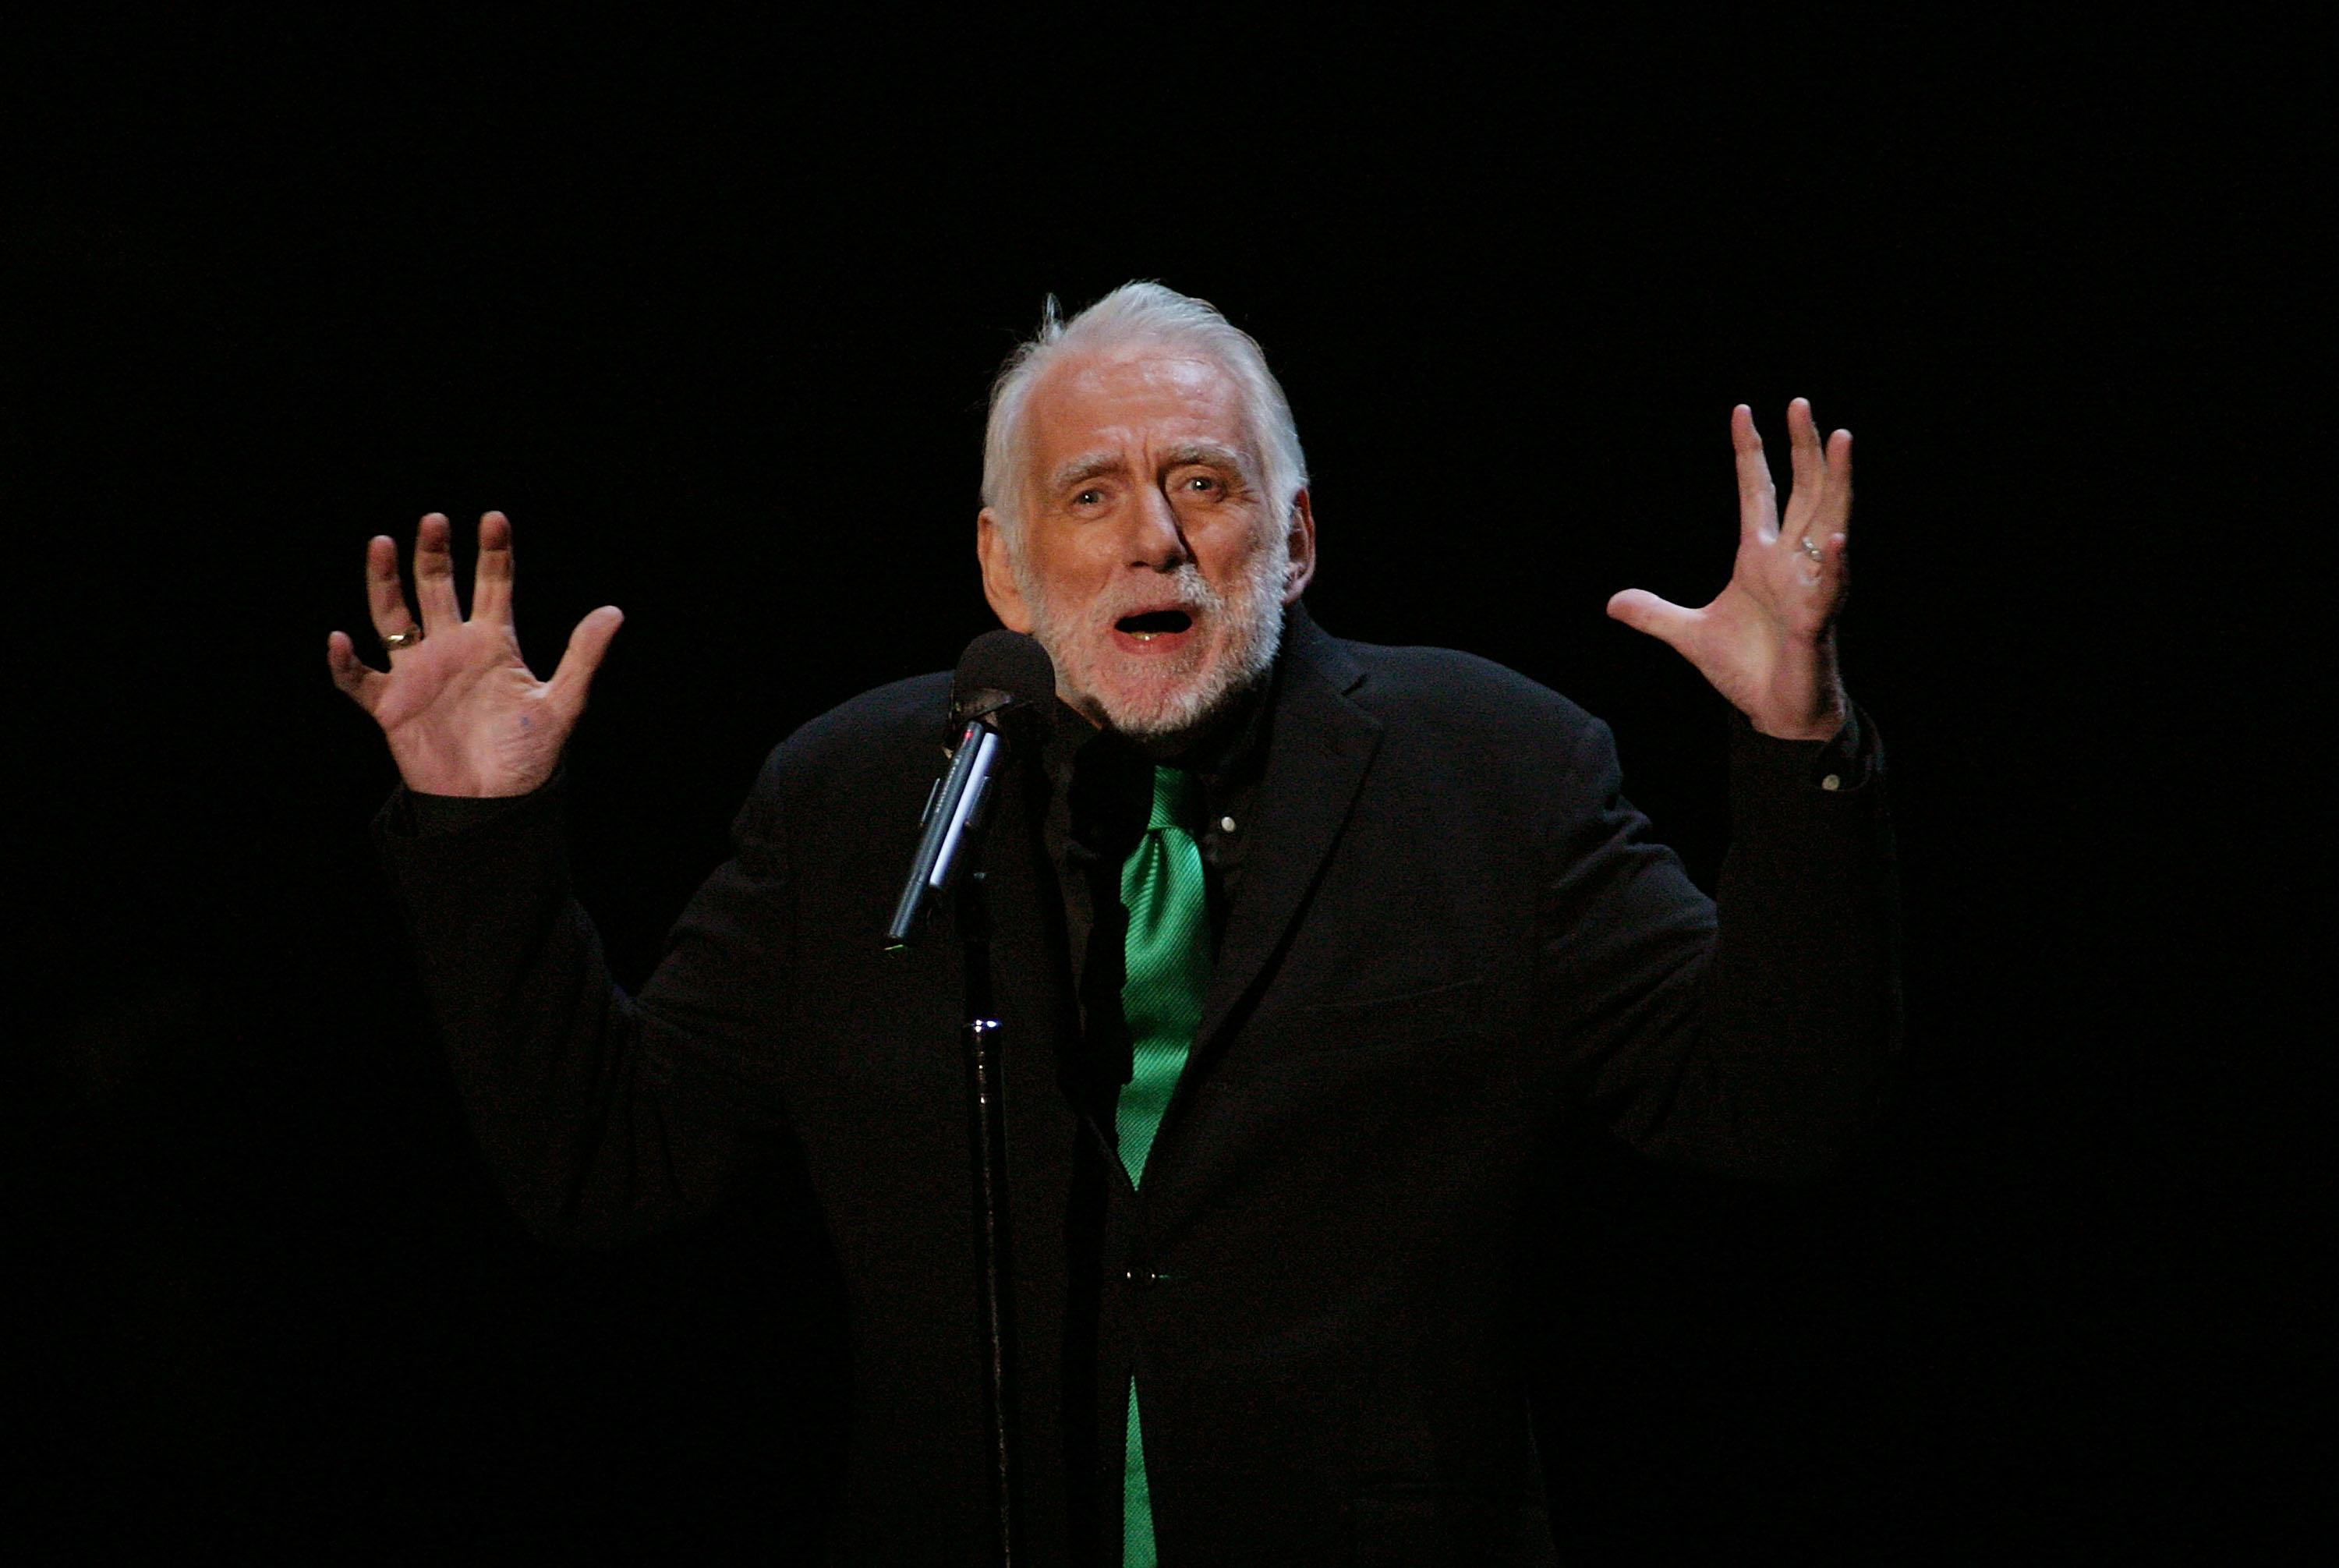 File photo of Rod McKuen performing at The 4th Annual S.T.A.G.E. event in Los Angeles, California, on October 25, 2003